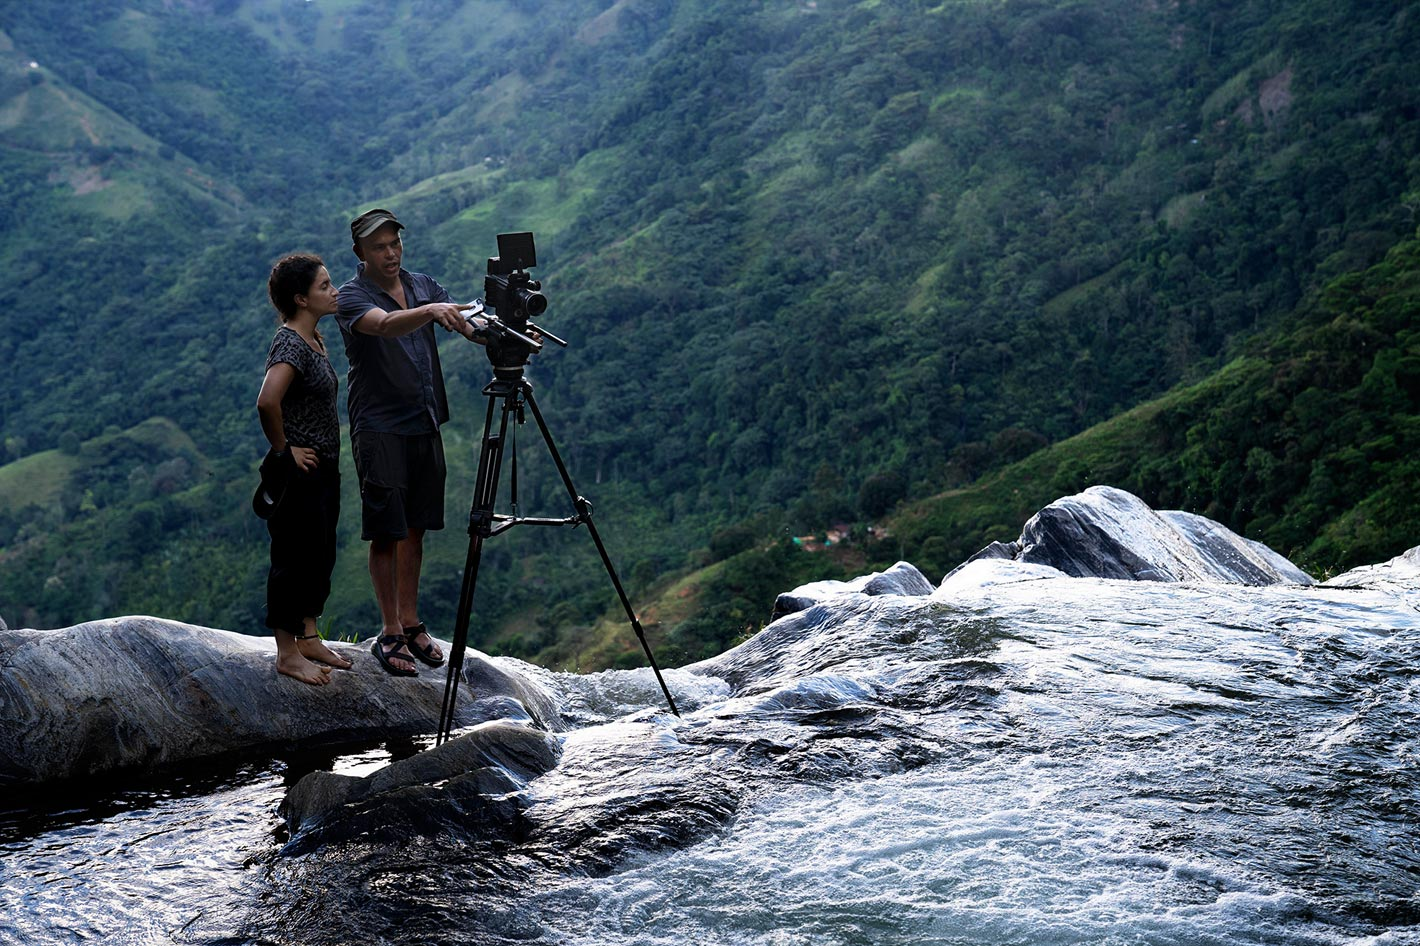 Cinematographer Federico Pardo and the Life Cube experience